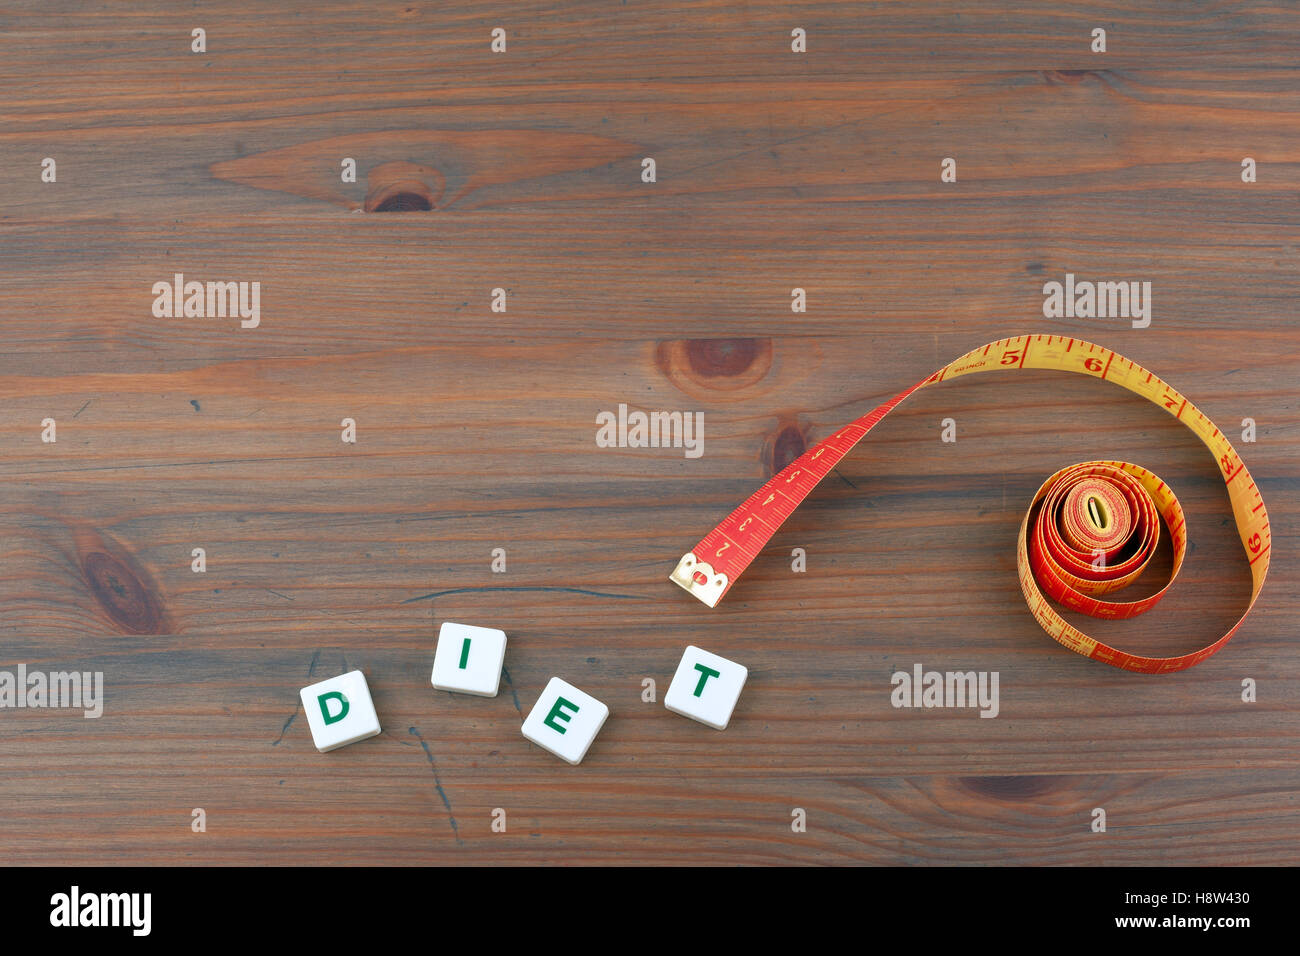 Metric measuring tape on a wooden background - Stock Image